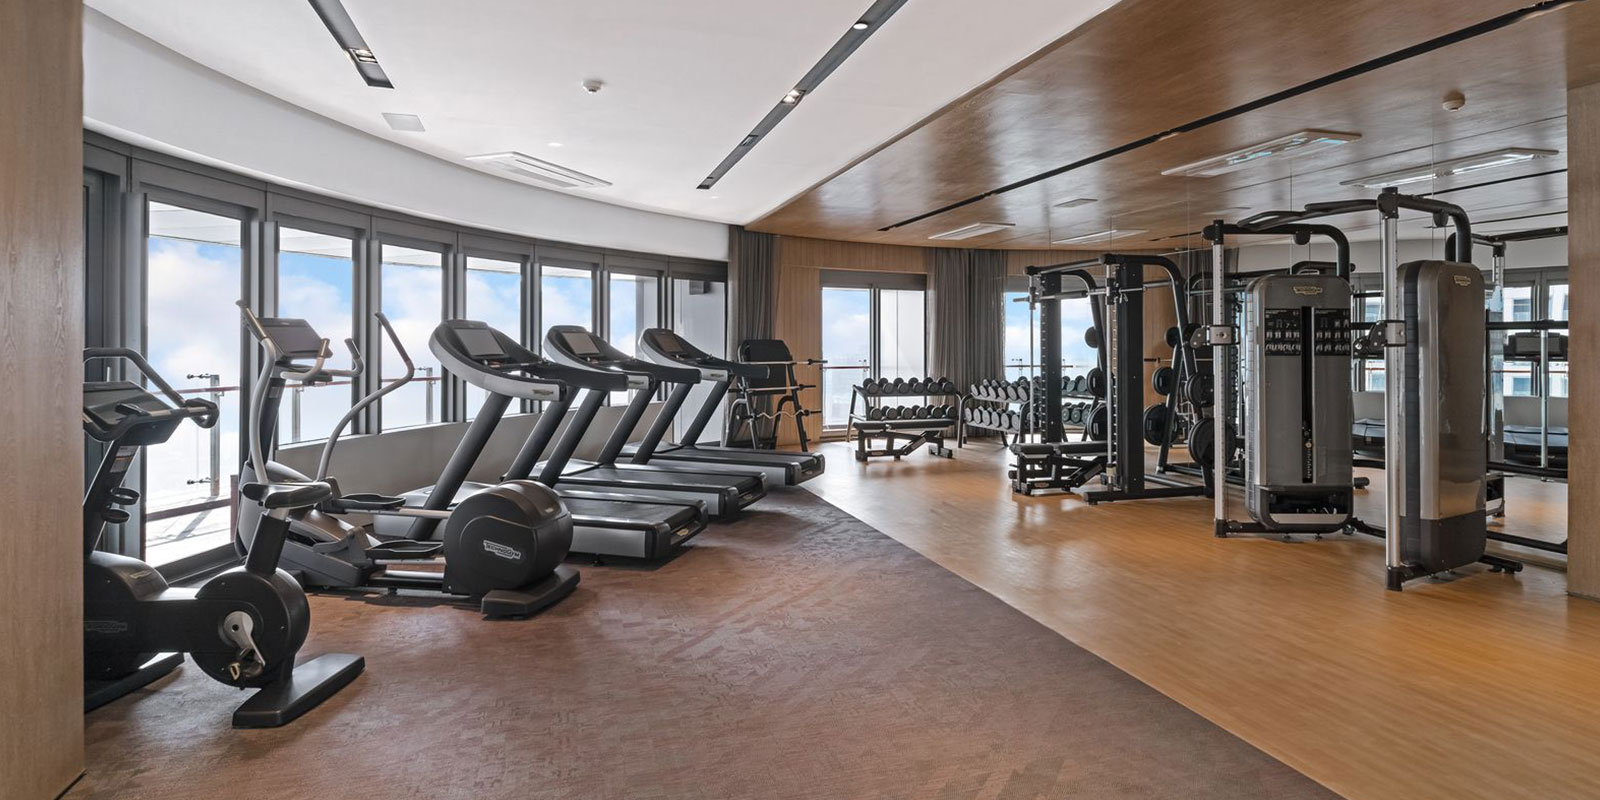 Spacious fitness suite packed with state-of-the-art equipment designed to ensure maximum efficiency and the best results with your workout.